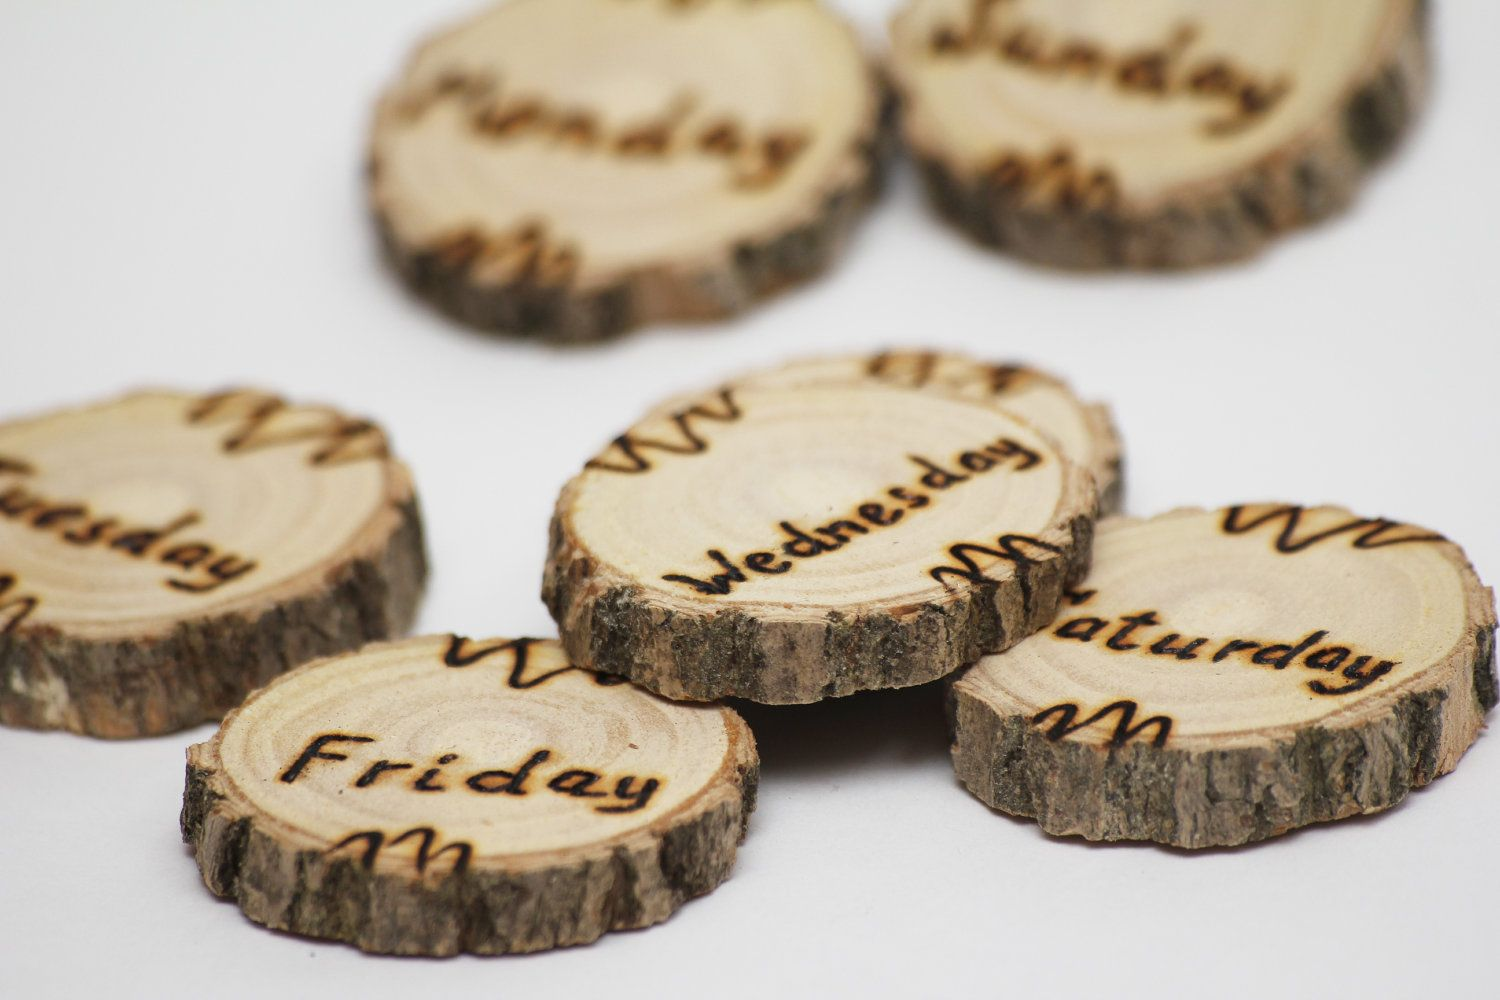 rustic gift 7pcs wood magnet wood gift kitchen magnet by EcoWood, $10.00